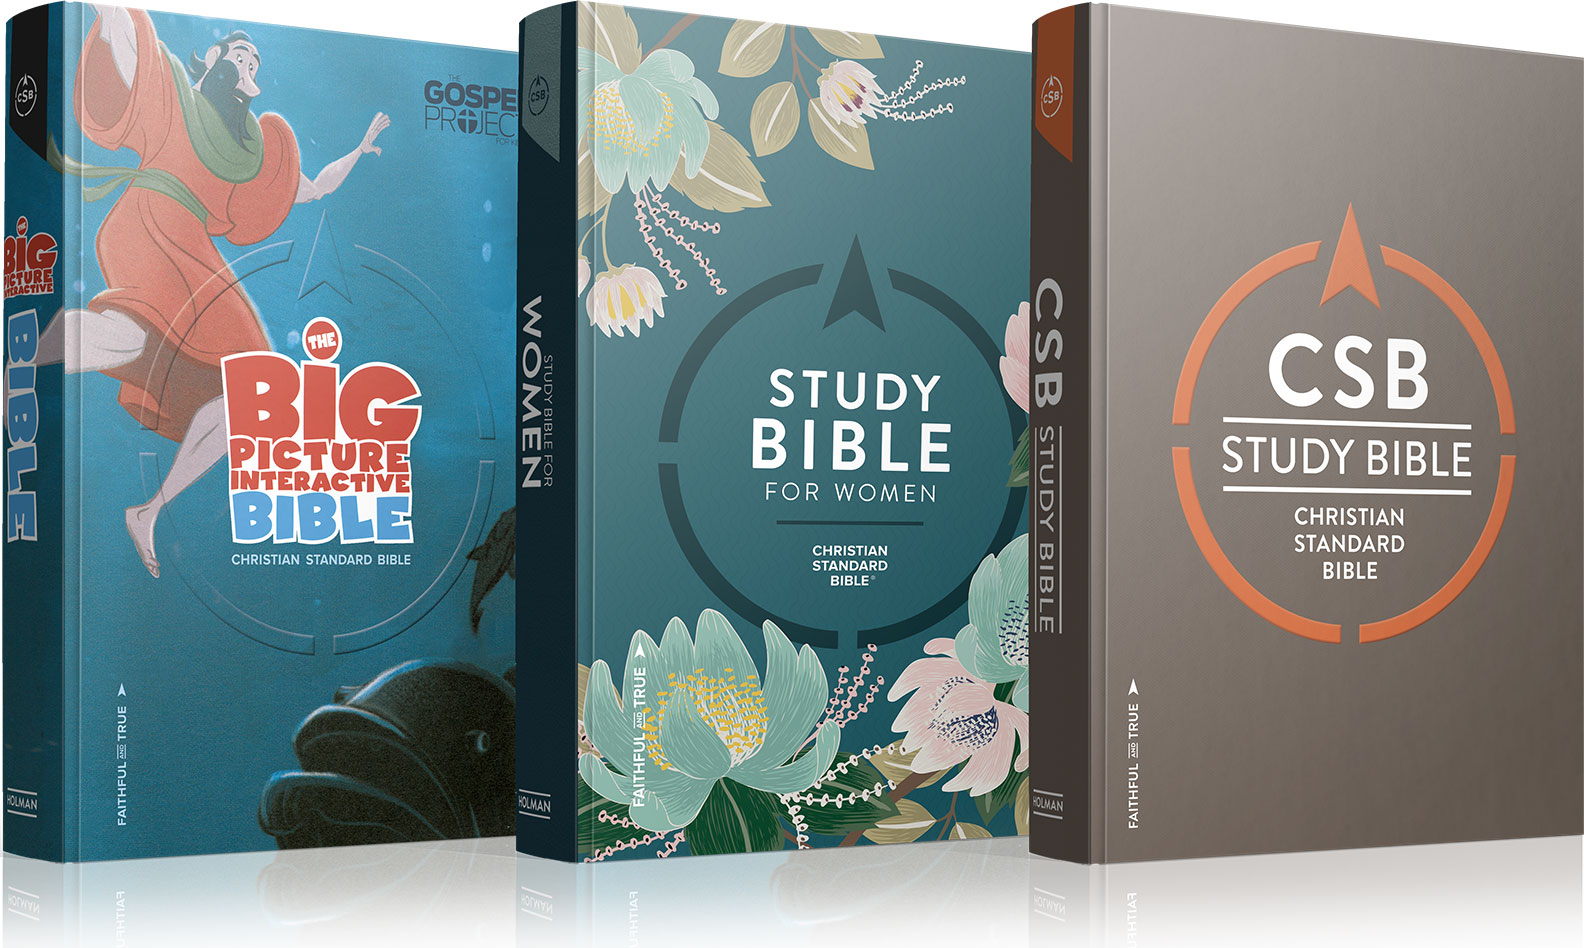 CSB Bible covers